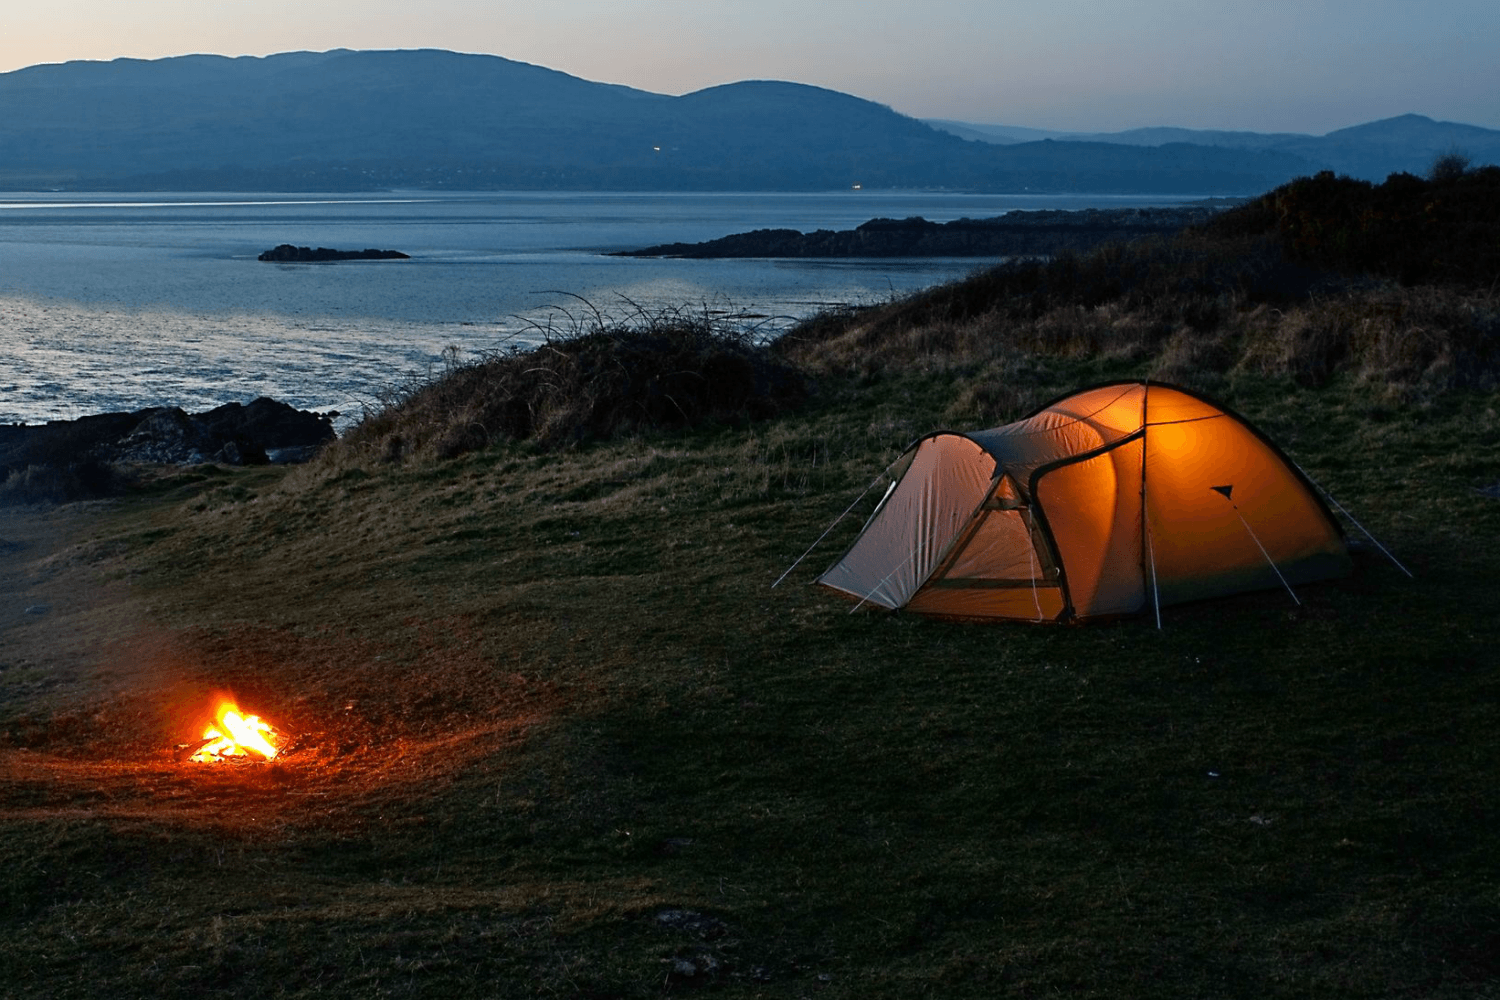 The 21 Best Camping Hacks To Keep You Prepared on the ...